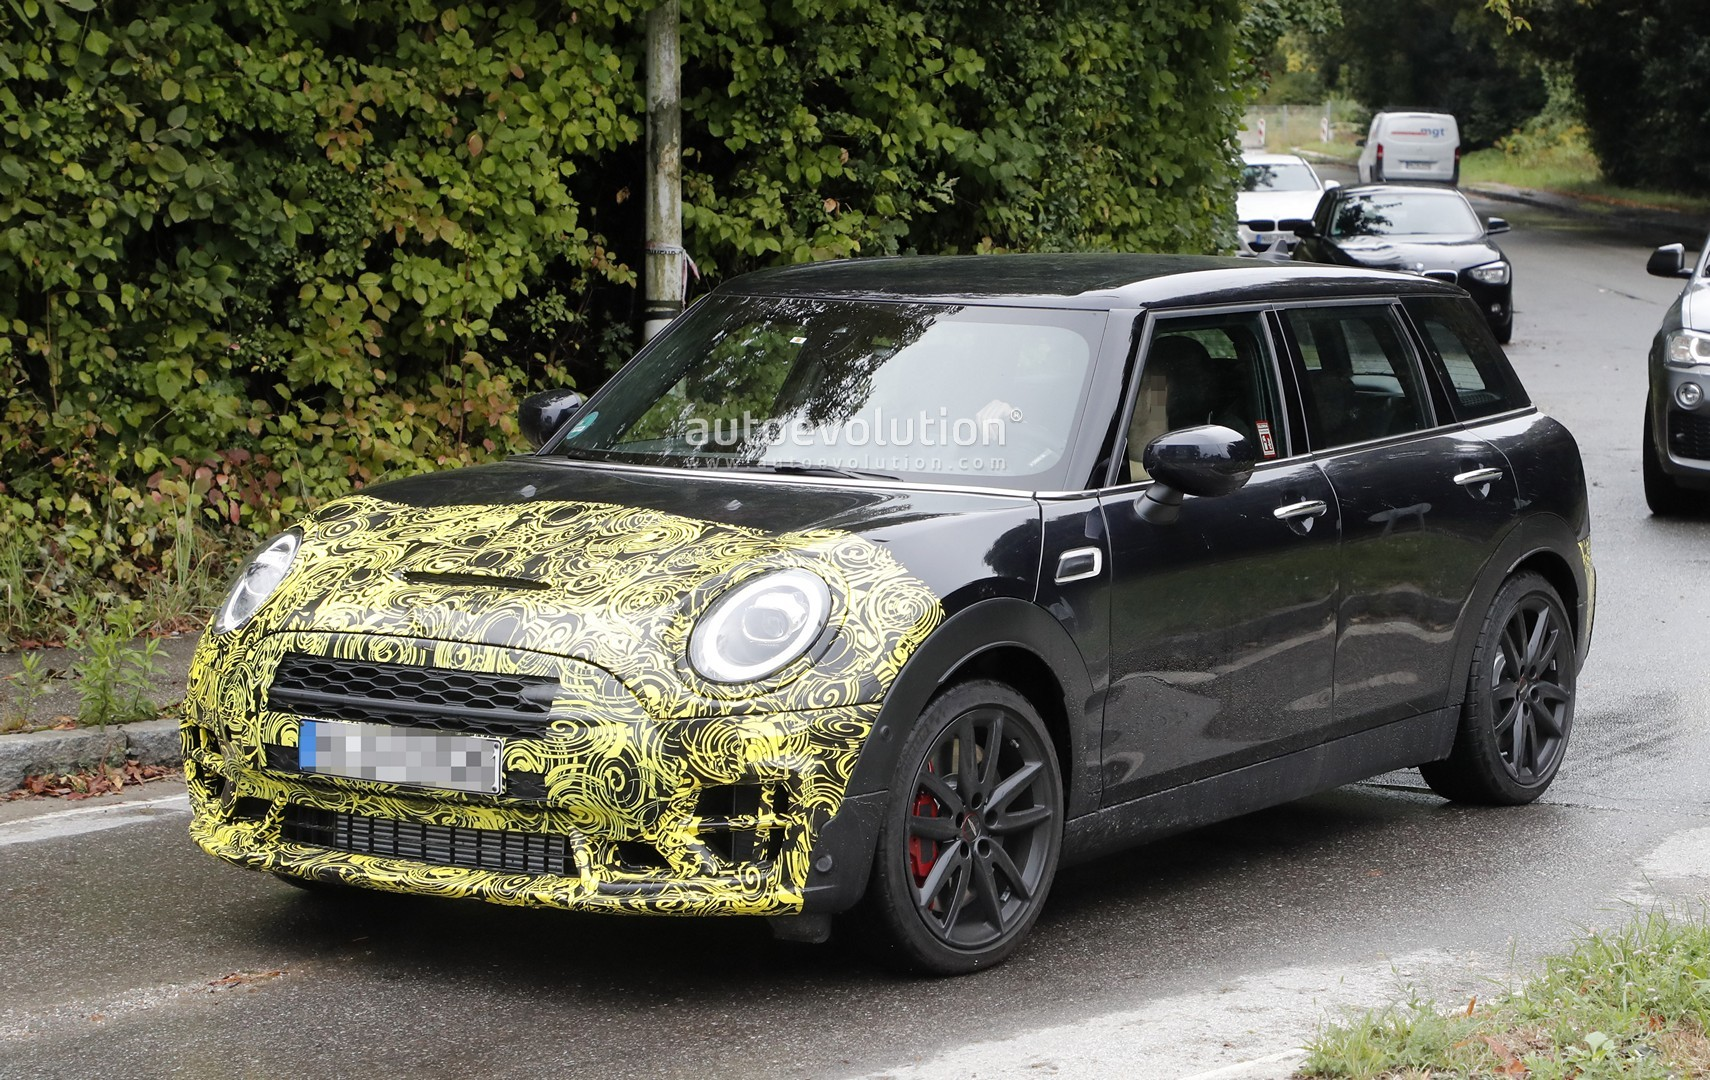 2019 mini clubman jcw spied testing alongside toyota supra. Black Bedroom Furniture Sets. Home Design Ideas